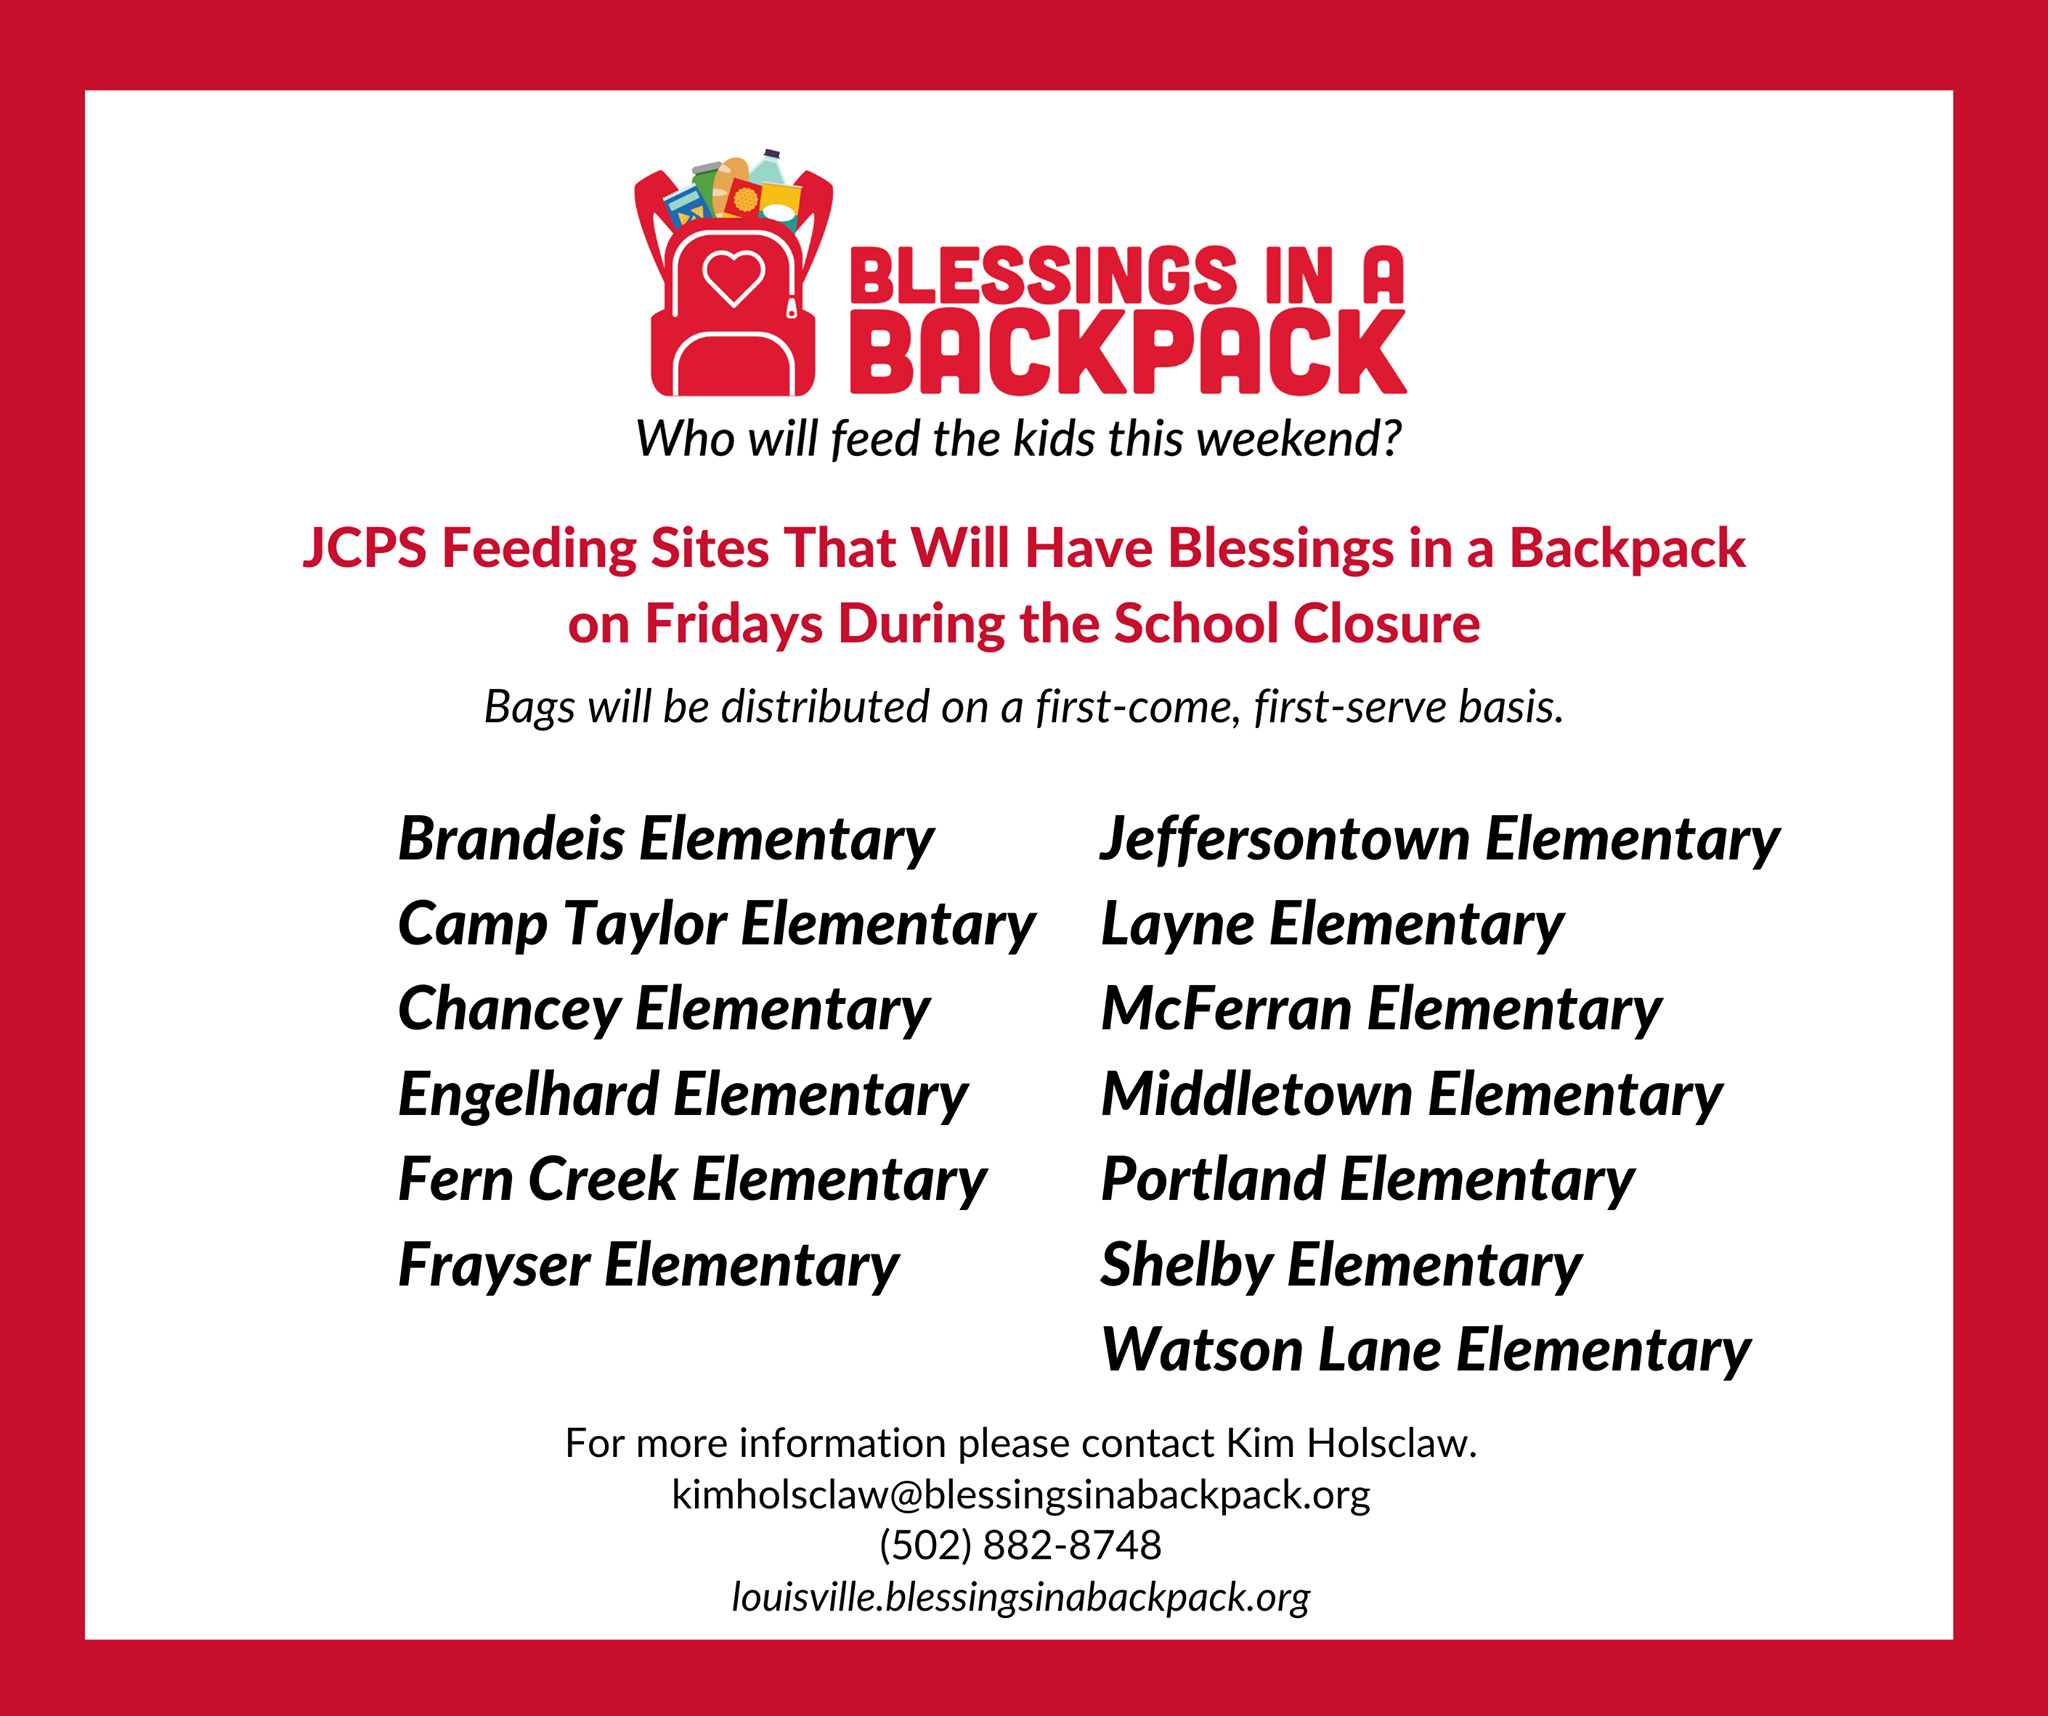 Blessings in a Backpack Food Will be Distributed at JCPS Feeding Sites